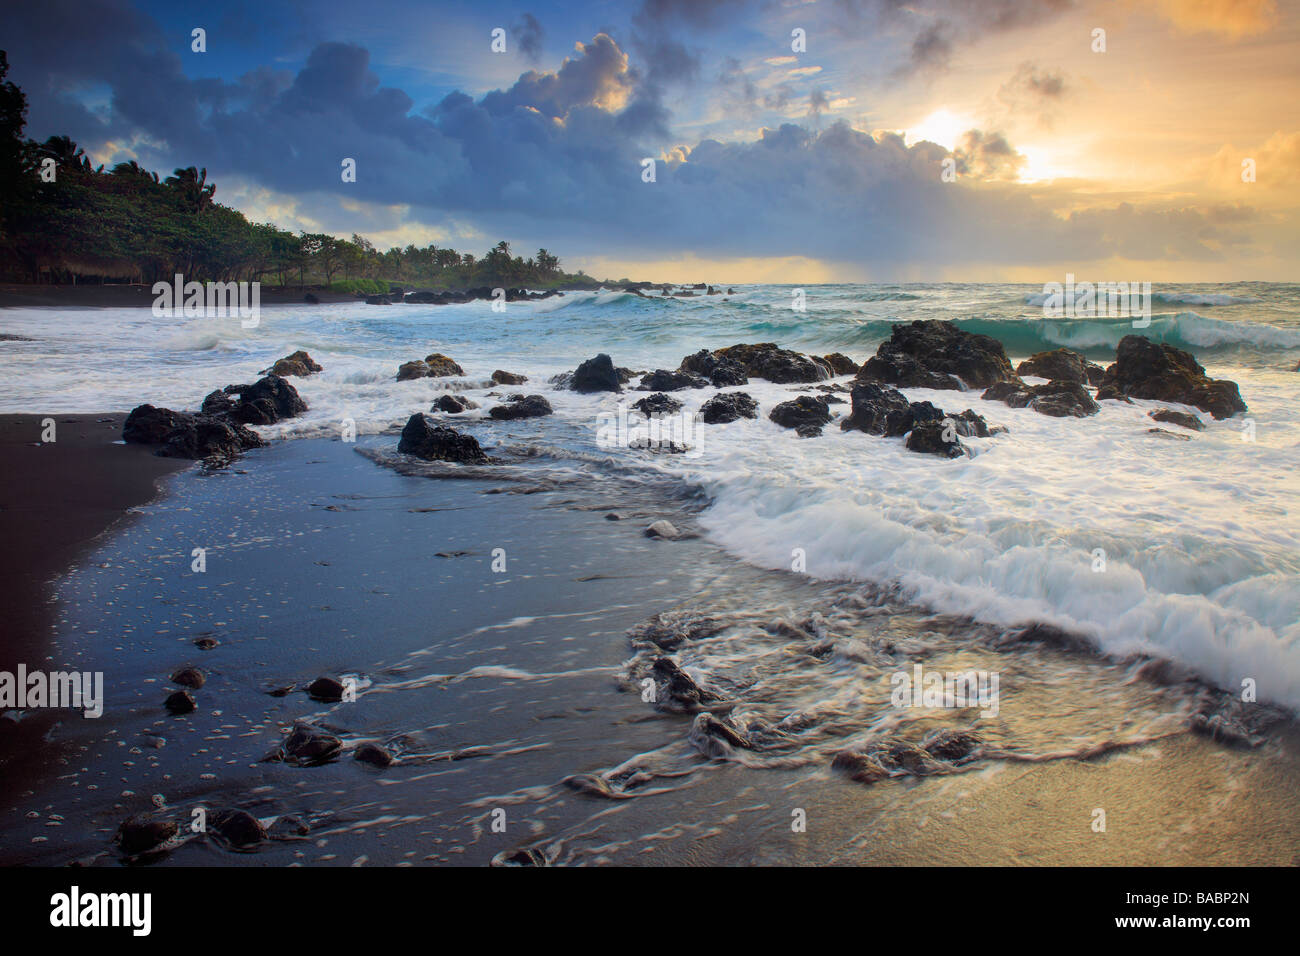 Dramatic sunrise over Hana Bay on the northeast coast of Maui, Hawaii, in the town of Hana - Stock Image